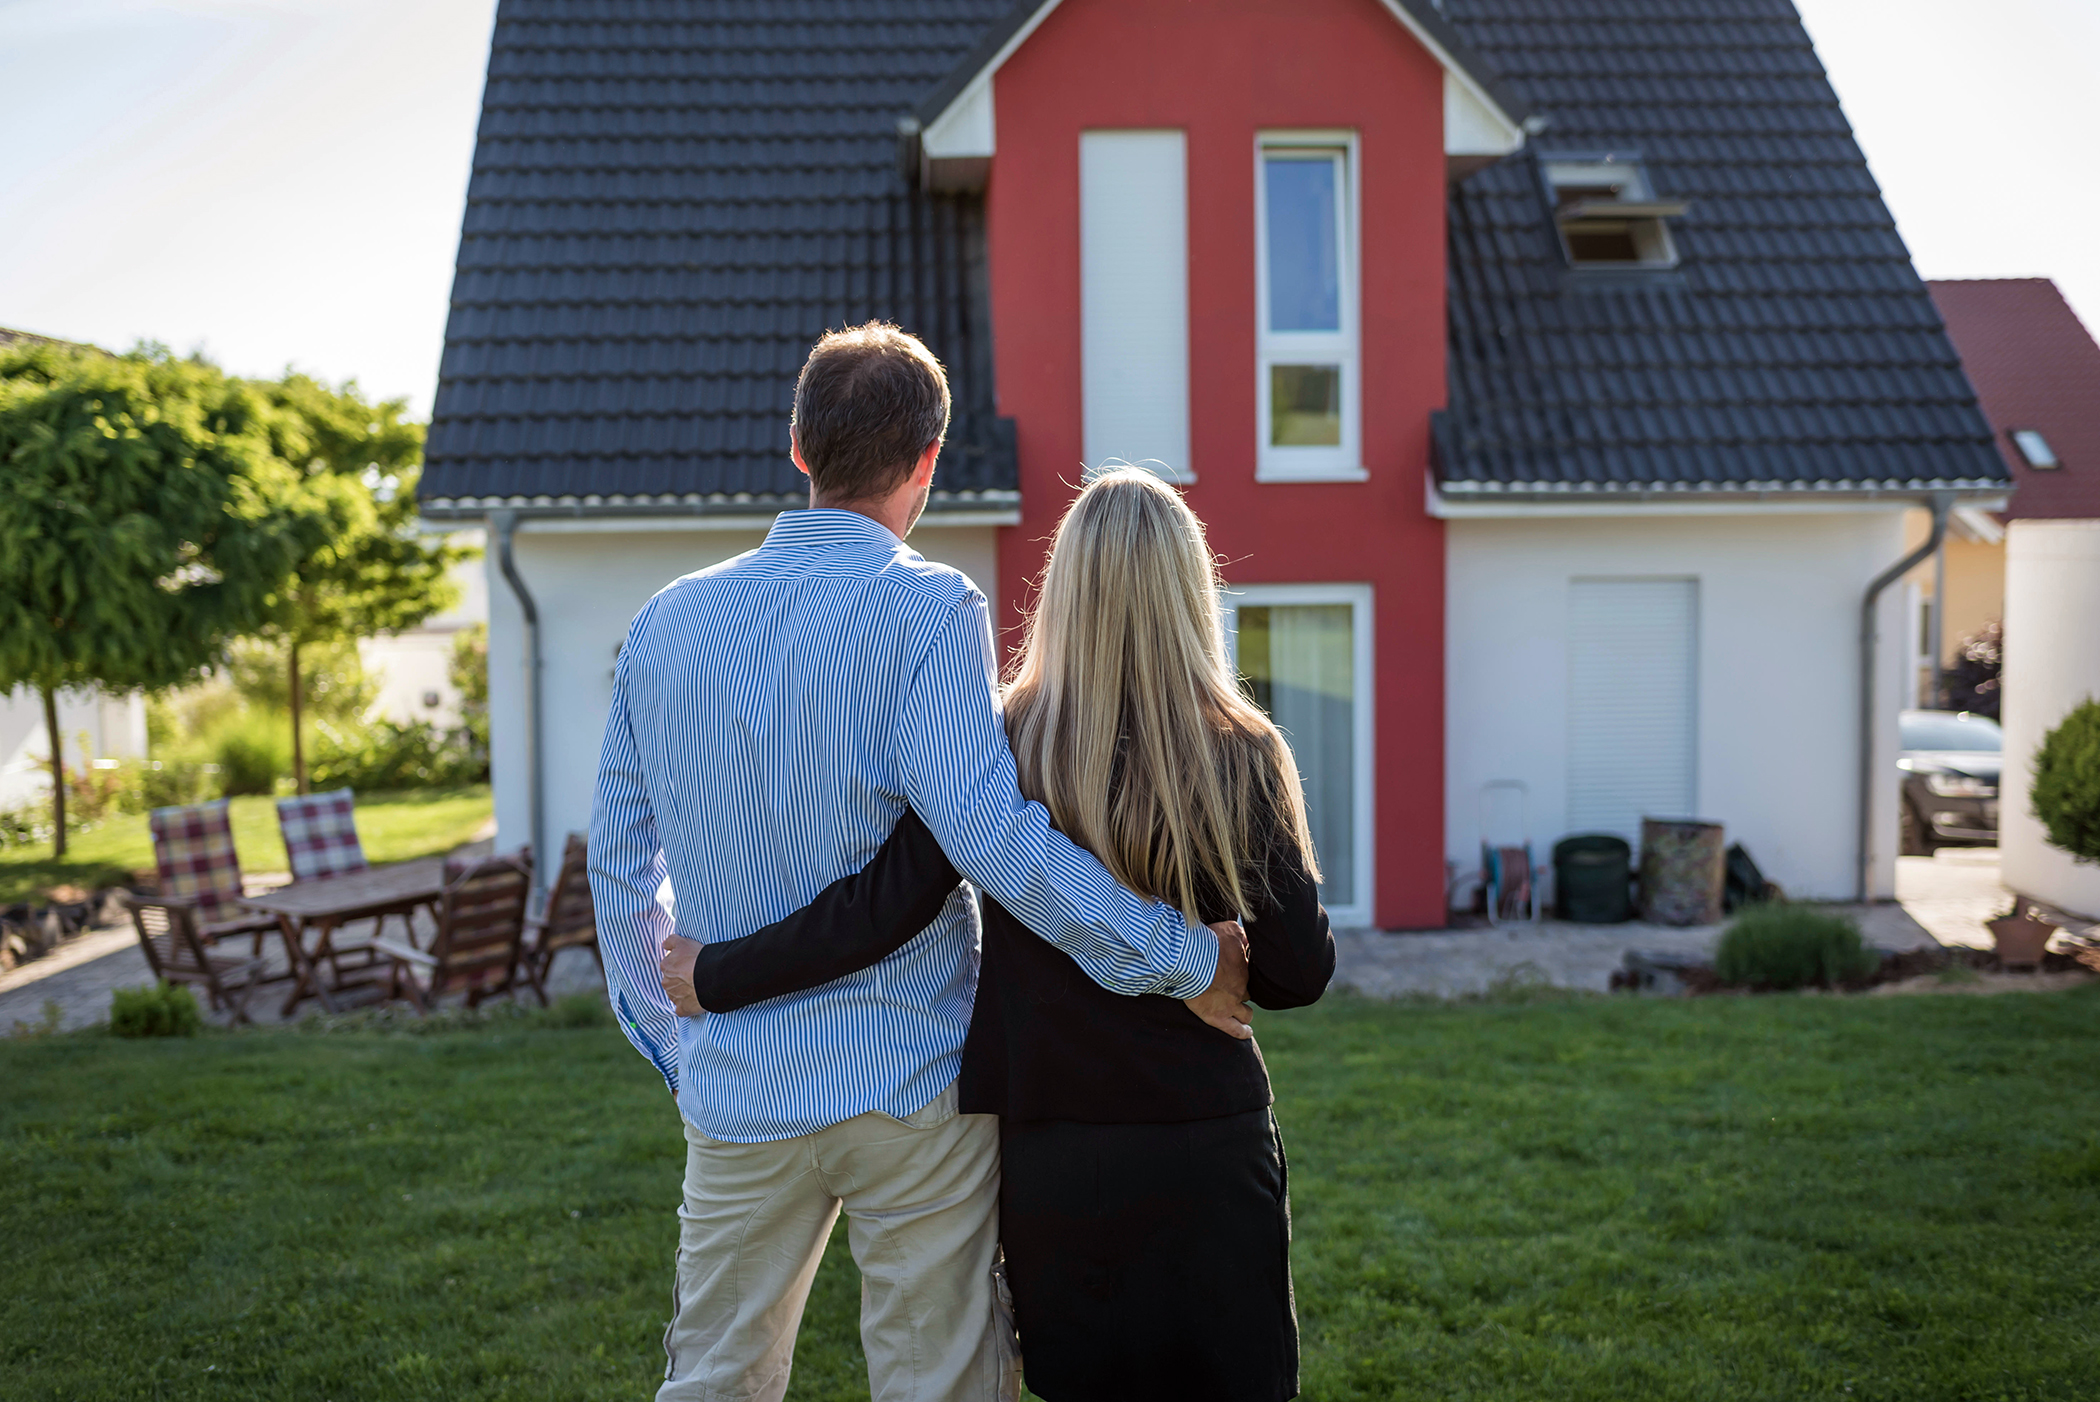 About Buying a Home or Piece of Land